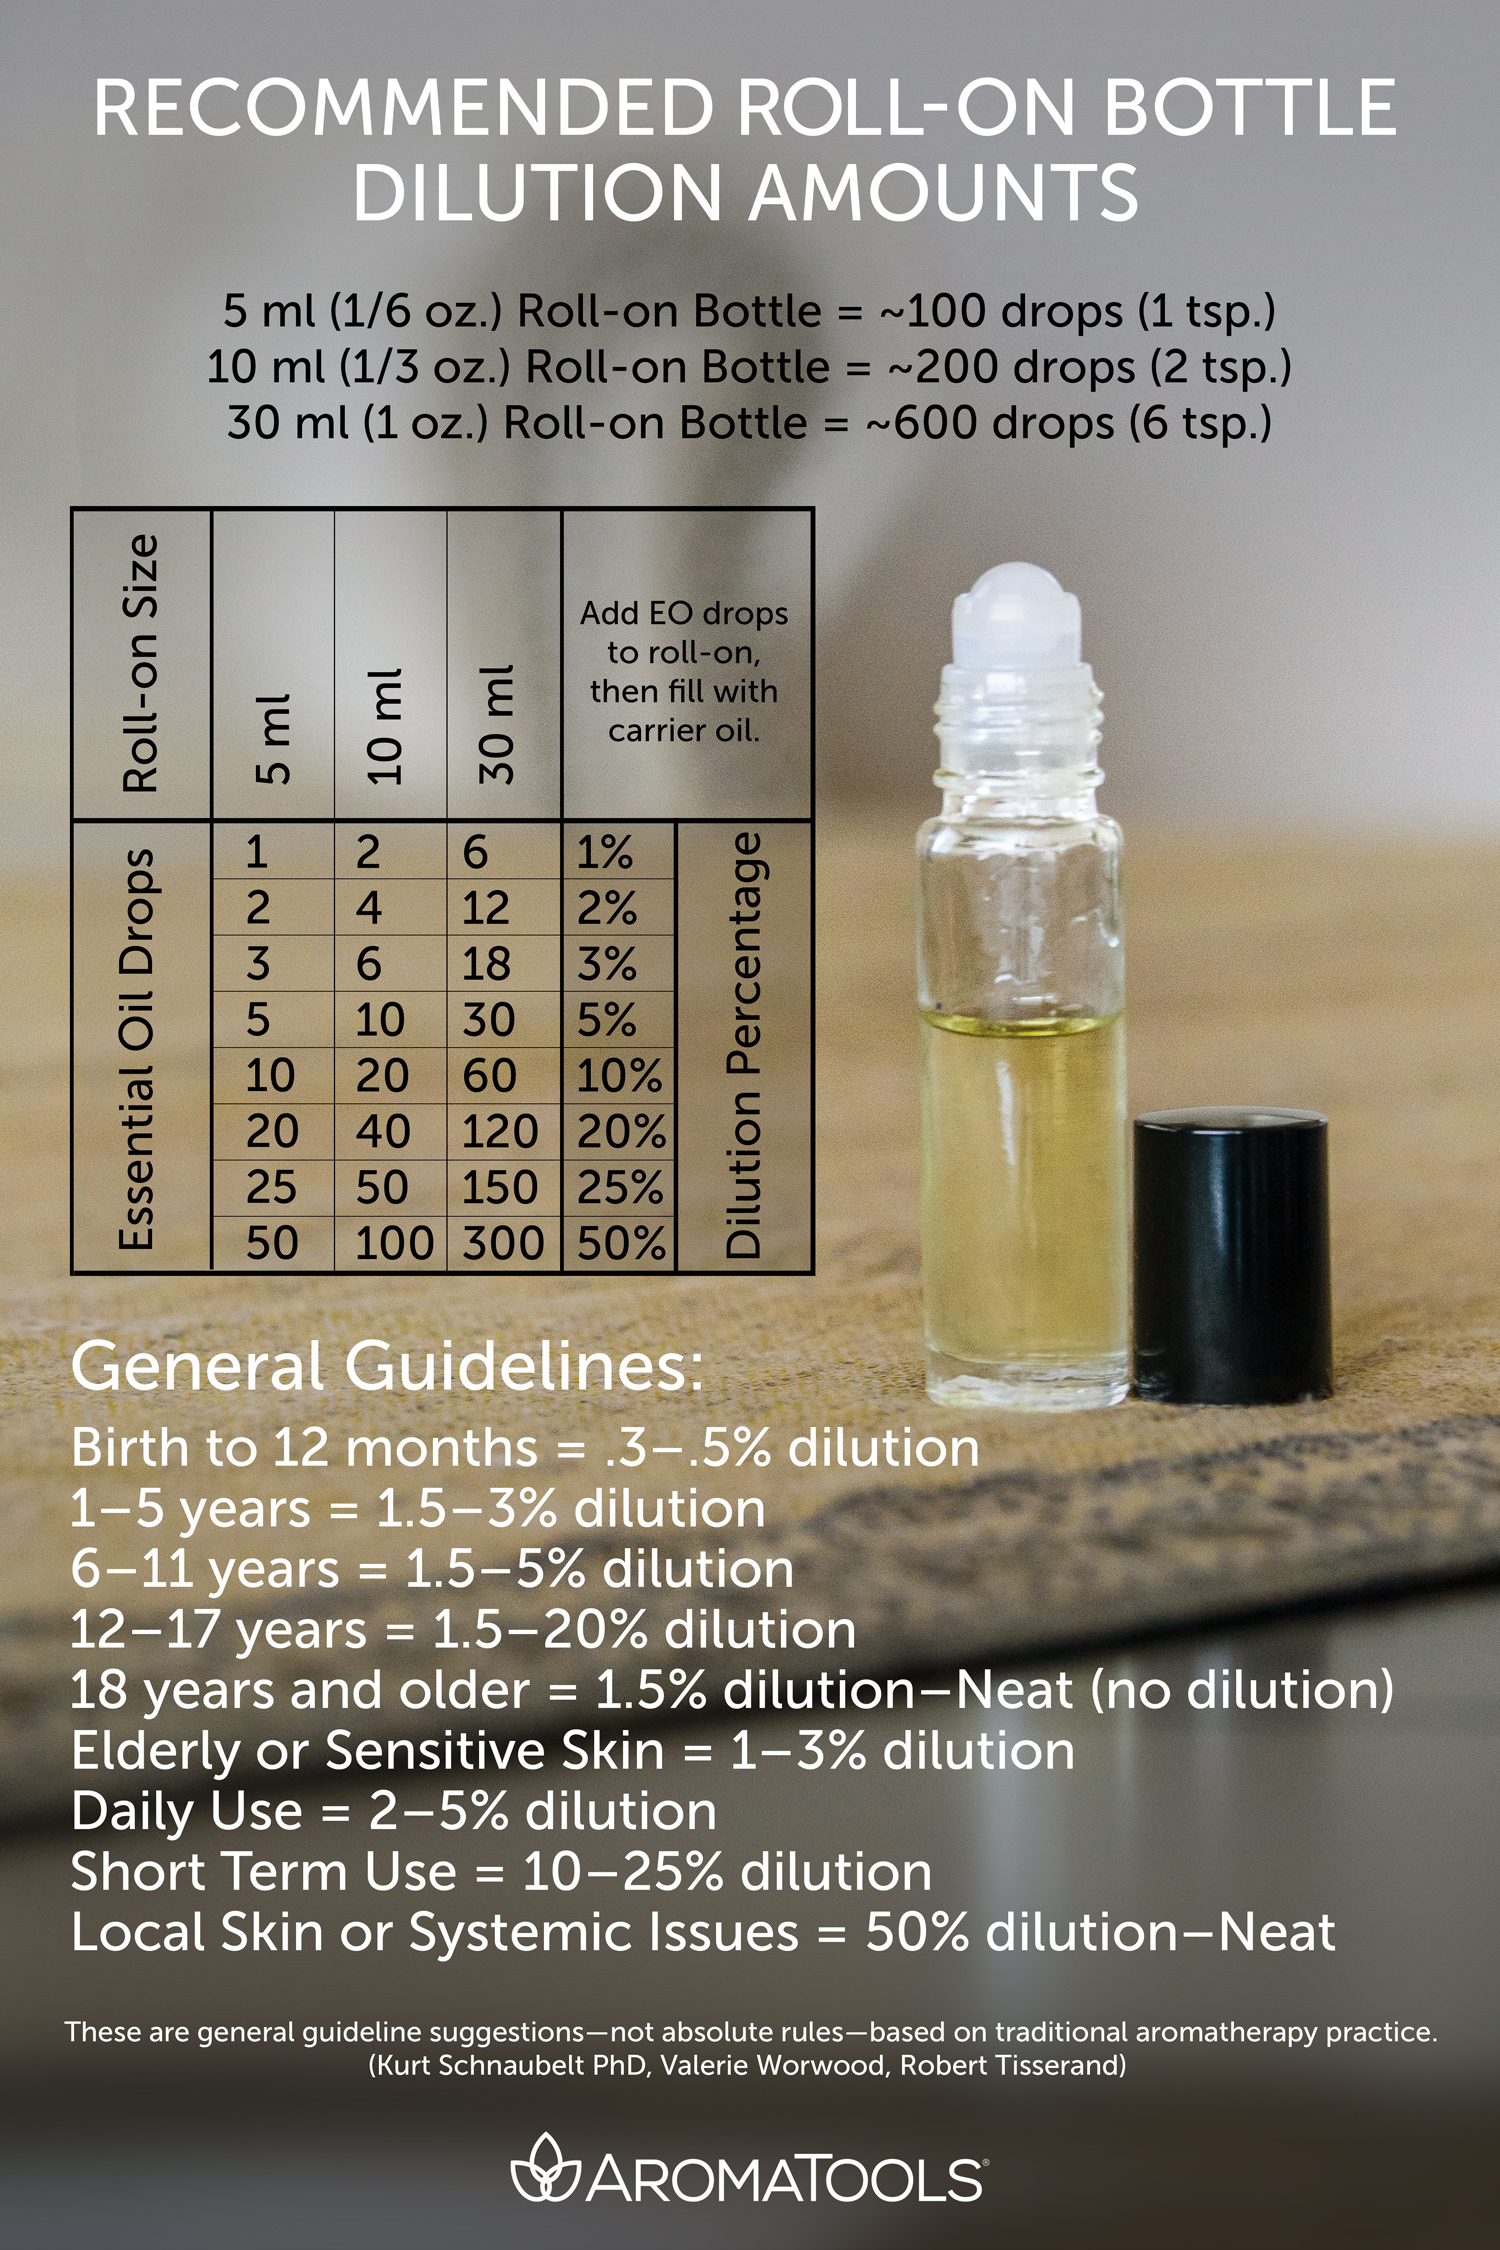 Dilution amounts can vary based on many factors including the  person   weight skin sensitivity health issues oils being used or length of time also art roller bottle blending aromatools blog rh blogomatools